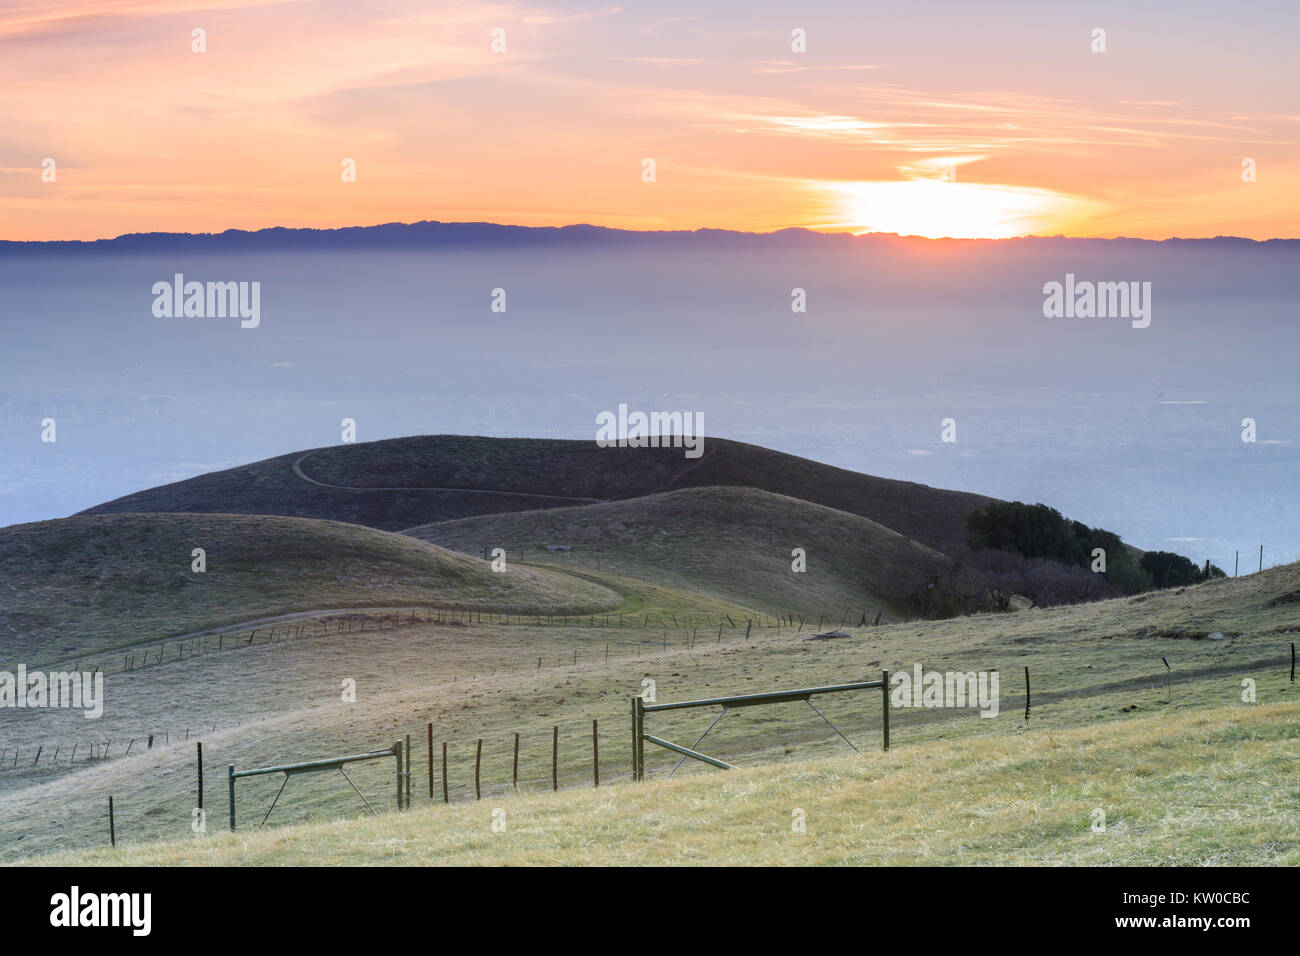 Silicon Valley Views from Sierra Vista Open Space Preserve. - Stock Image